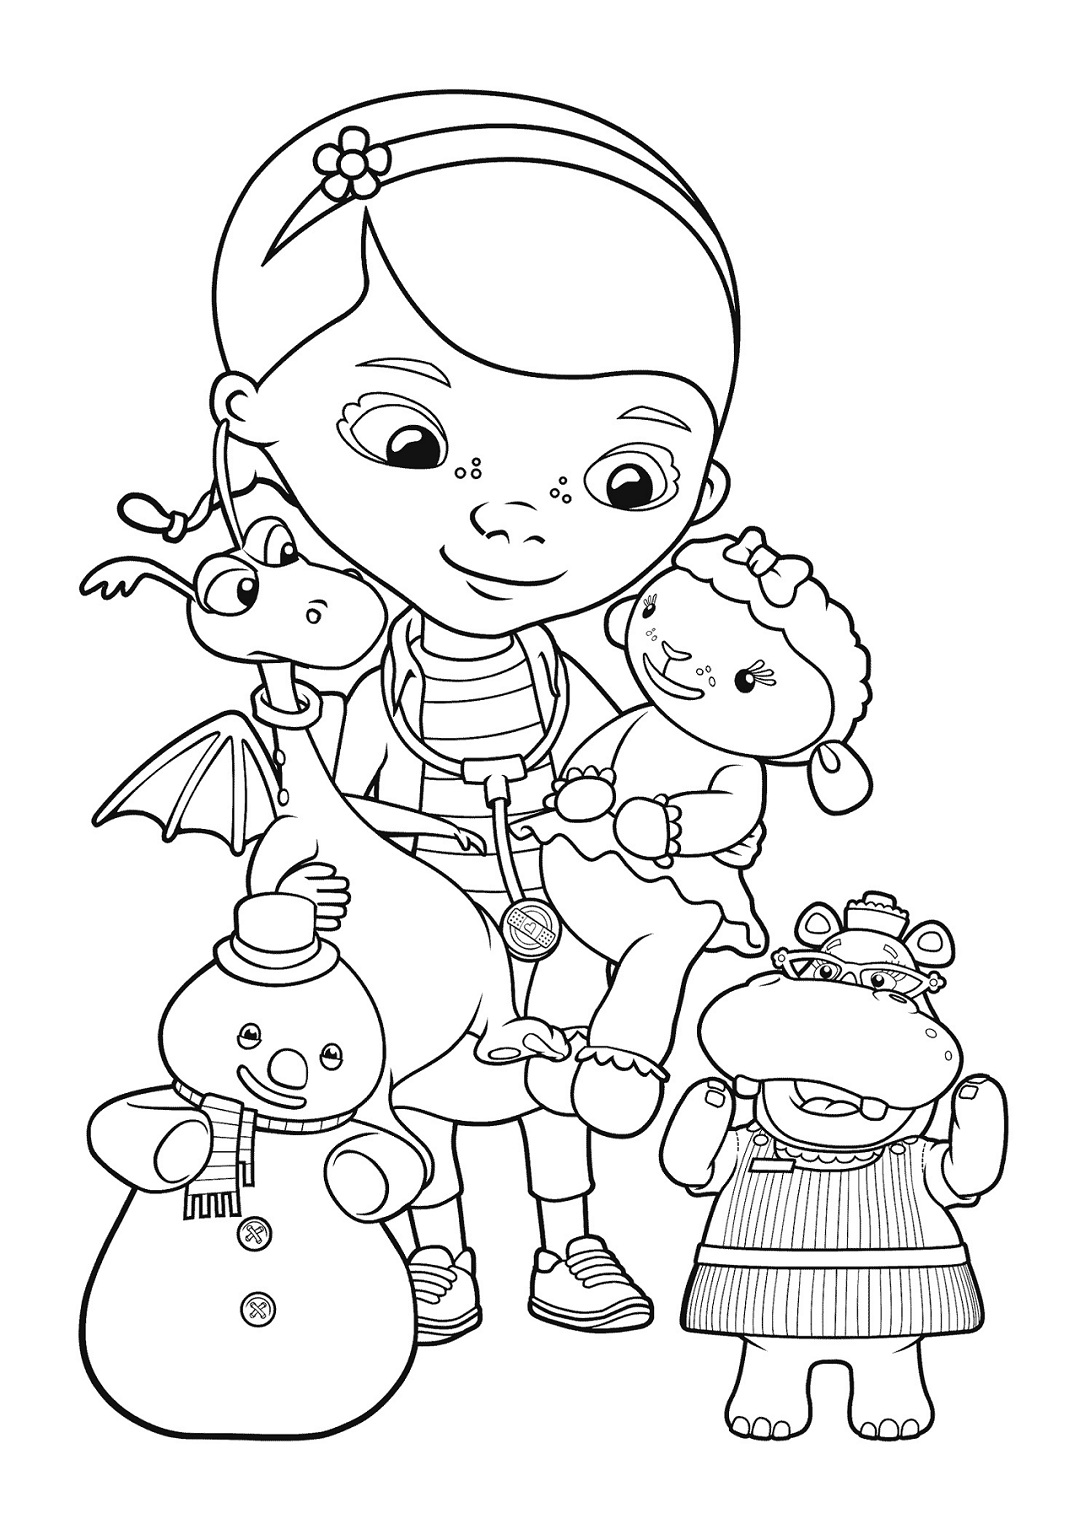 best coloring pages ever - doc mcstuffins coloring pages to download and print for free